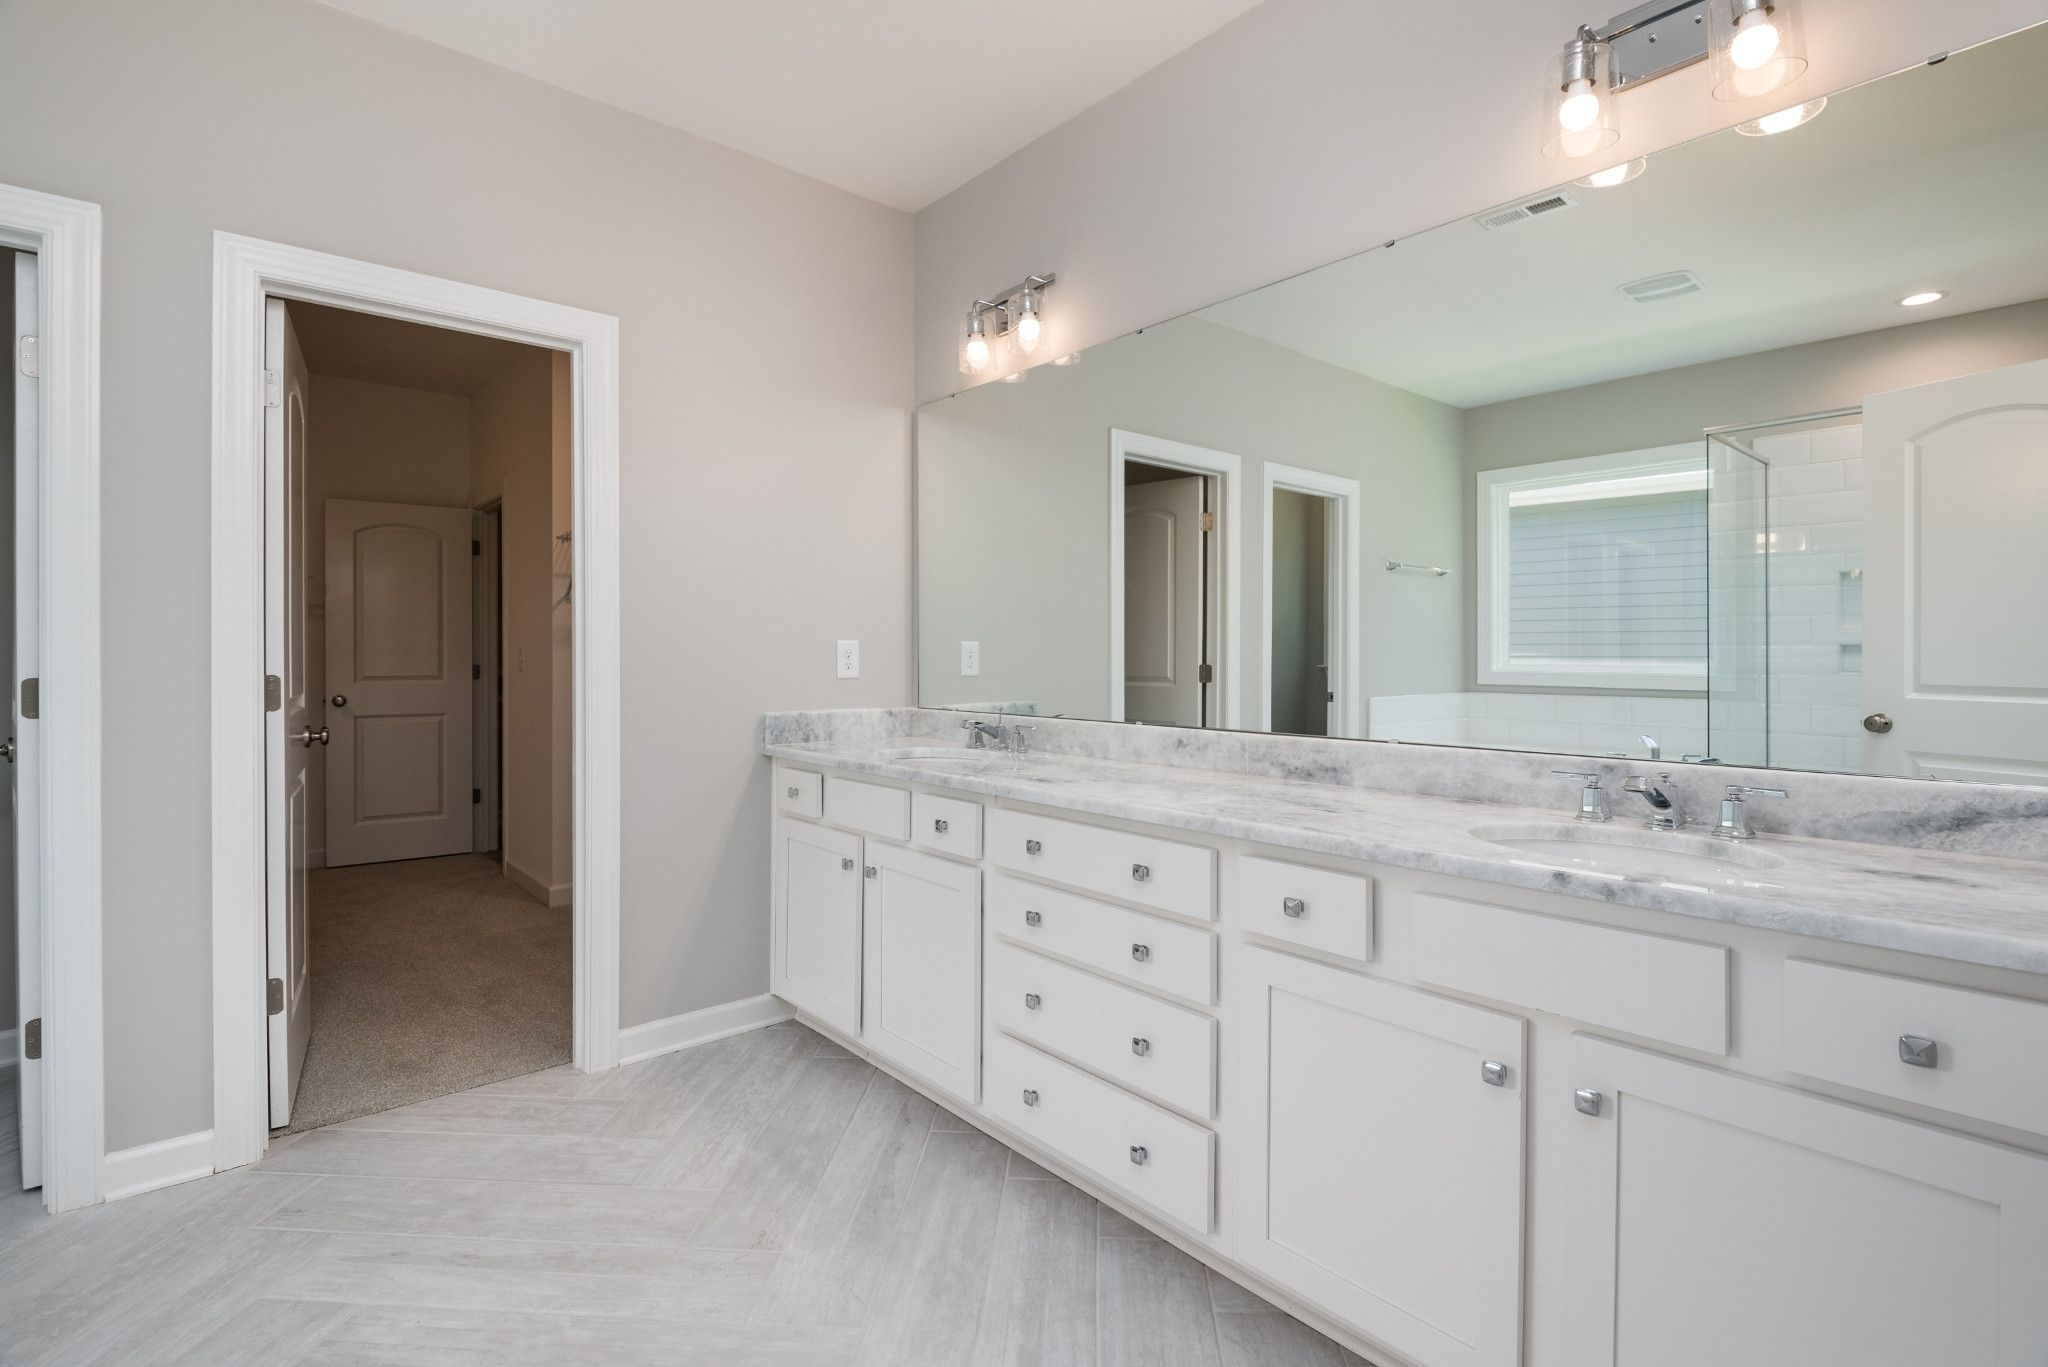 Bathroom featured in the Davidson By Shea Homes in Charlotte, NC